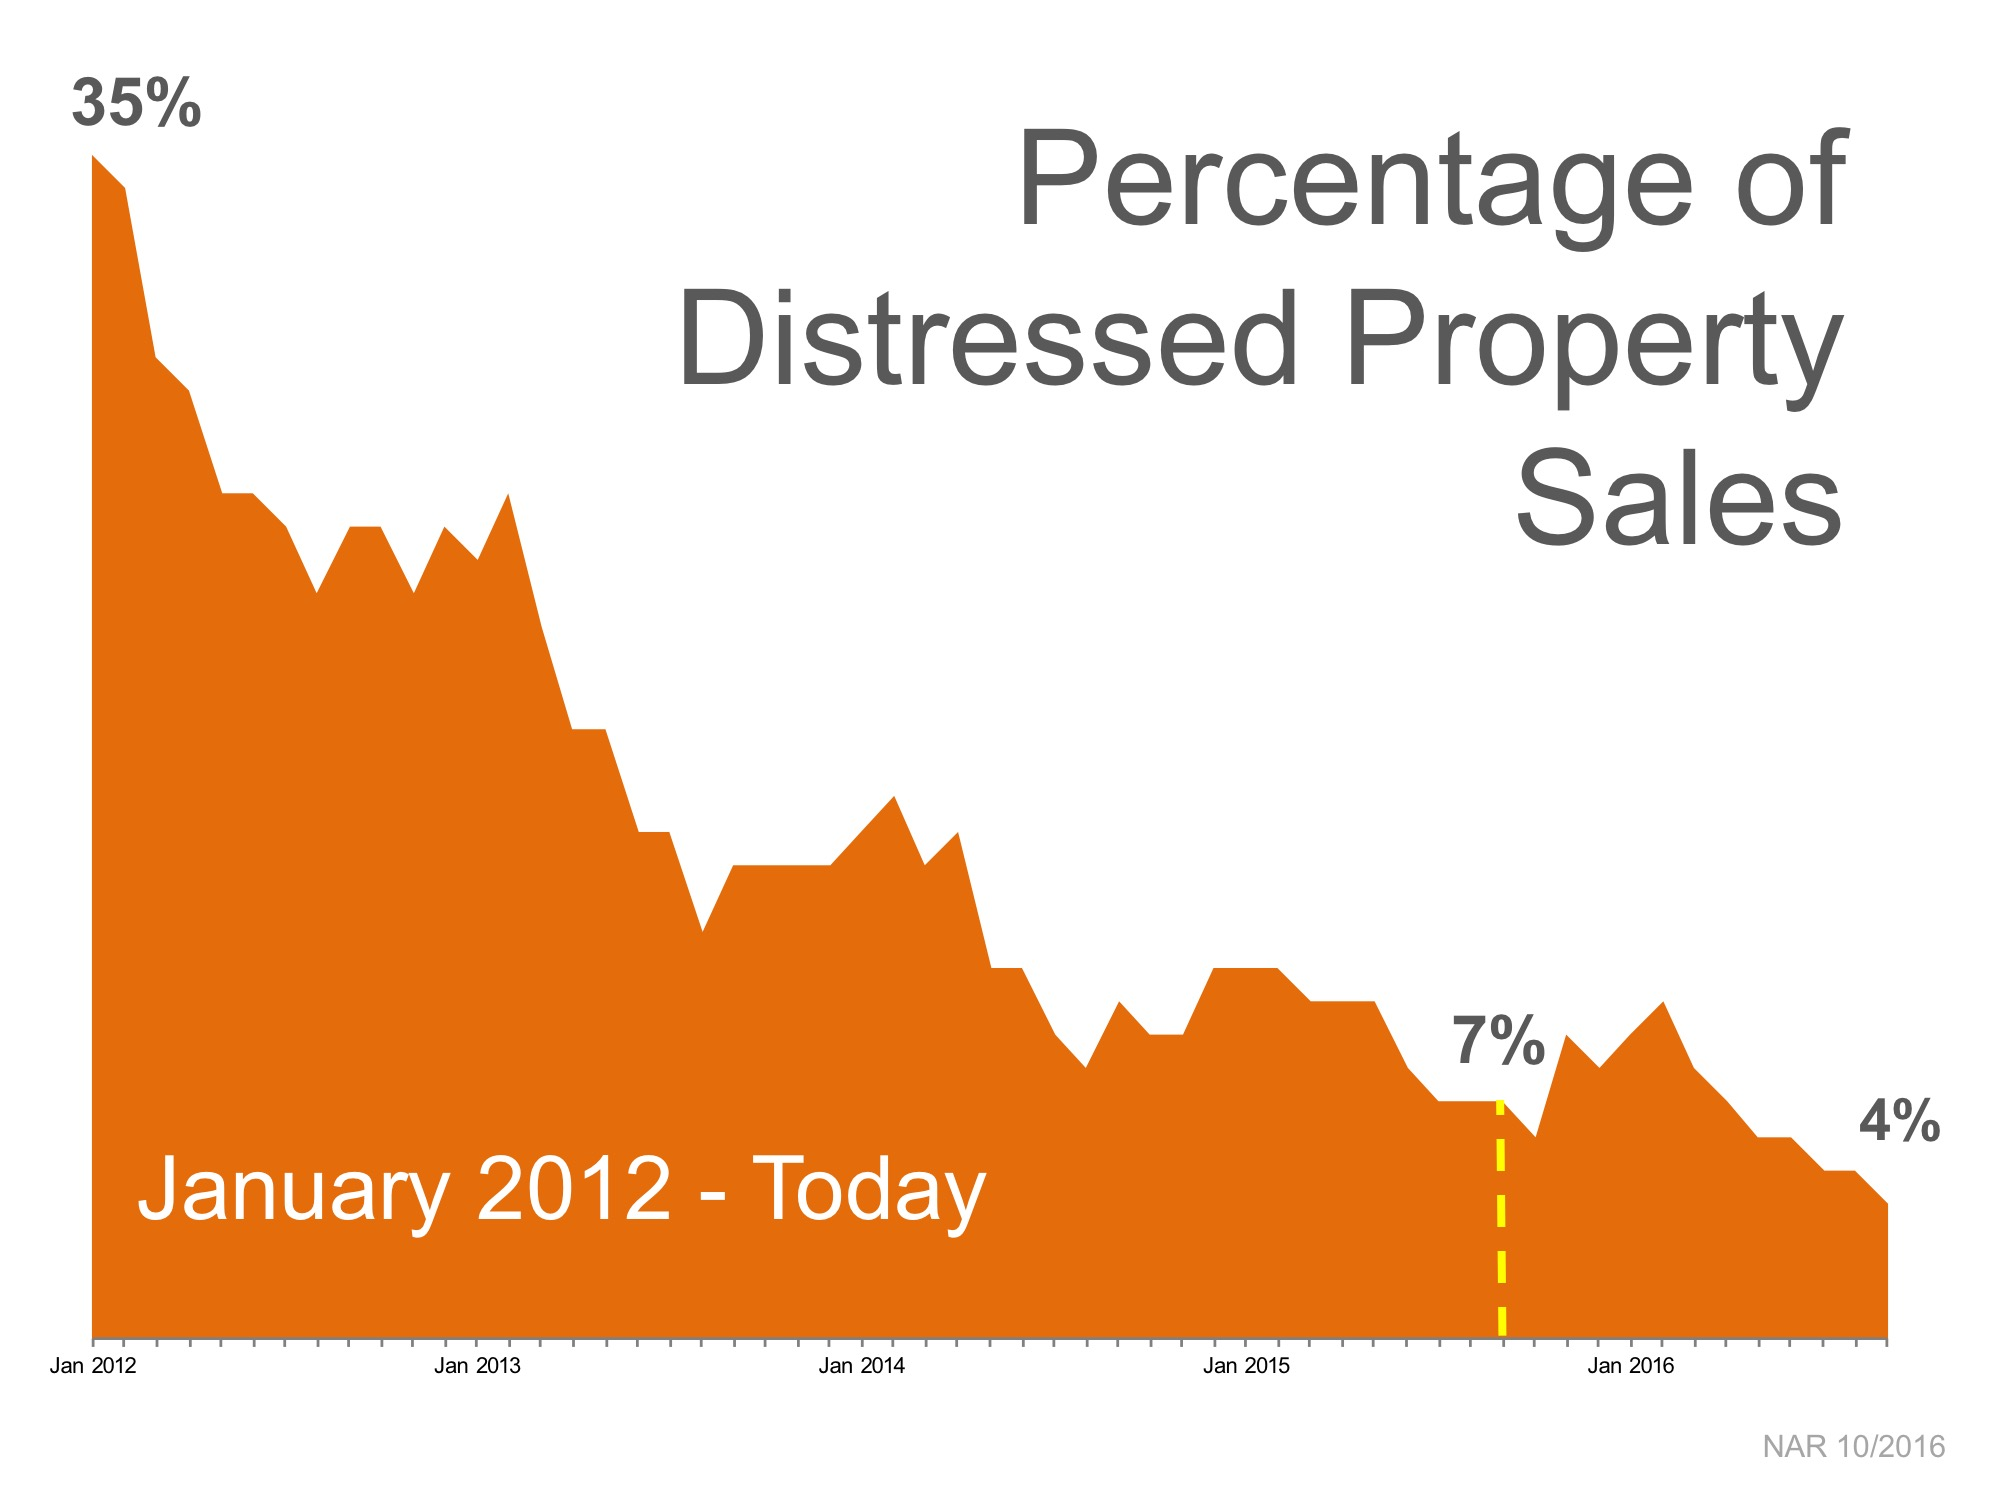 Percentage of Distressed Property Sales